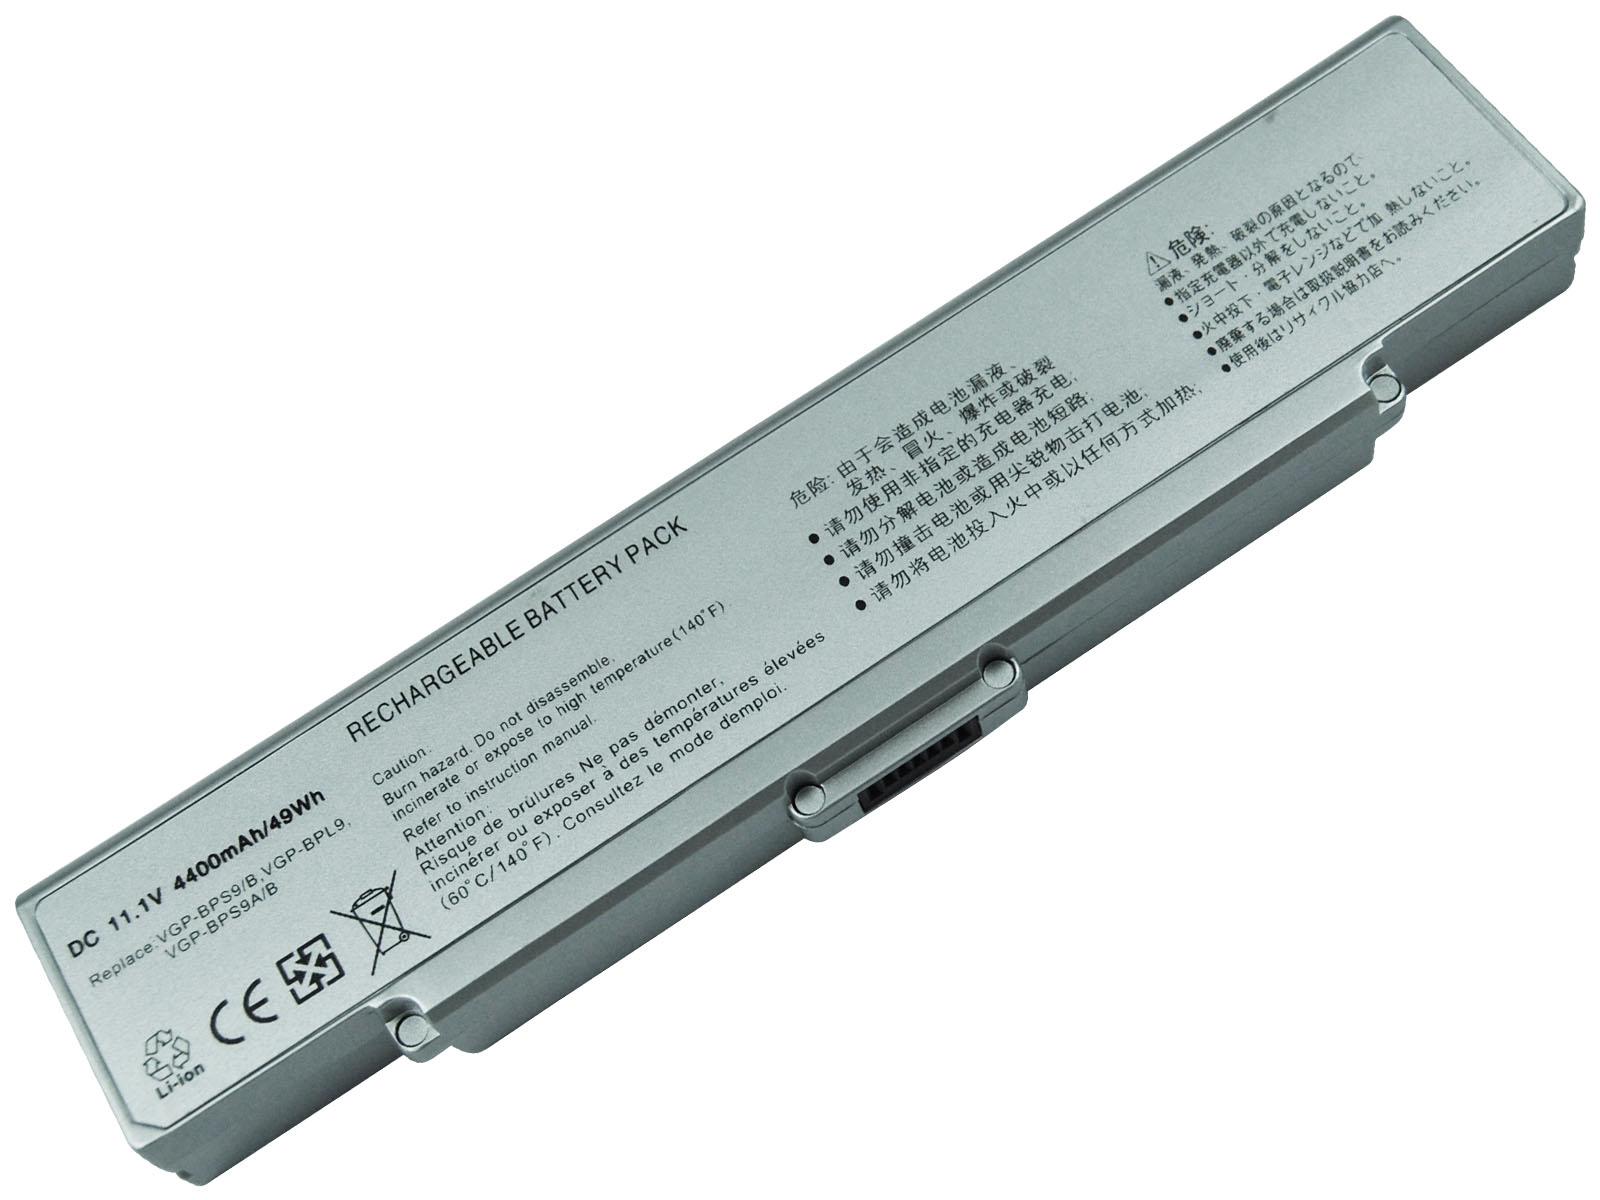 Sony Vaio Laptop Manuals Vgnaw Series Schematics And Block Diagram Free Schematic Assist Button Array Superb Choice Battery For Vgn Cr60vaio Cr90 Rh Walmart